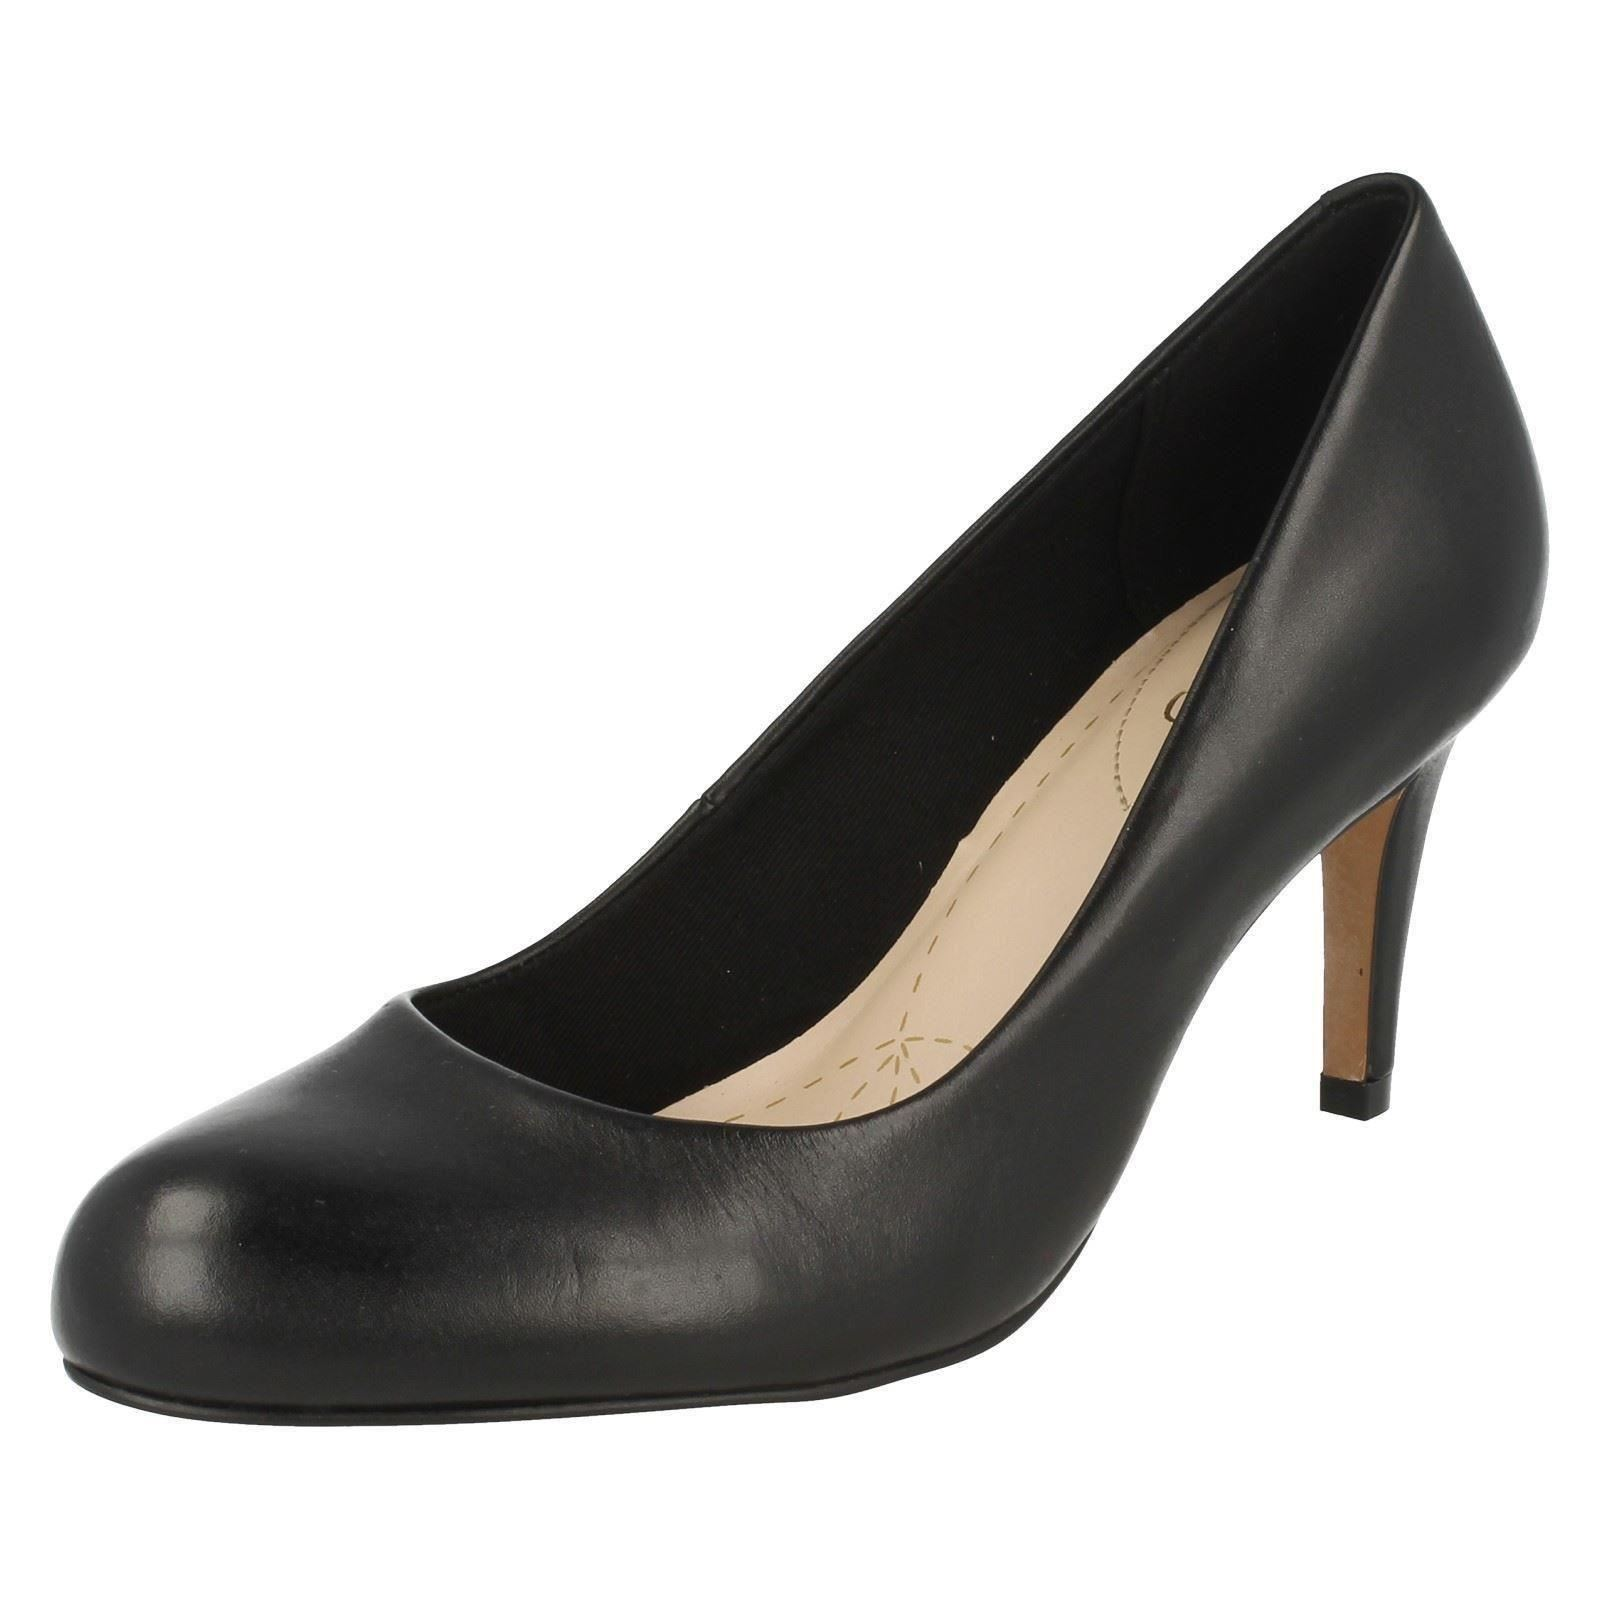 Ladies Clarks Fashion Court Schuhes Schuhes Schuhes Carlita Cove schwarz Leder 6.5 UK ... 9a4f85